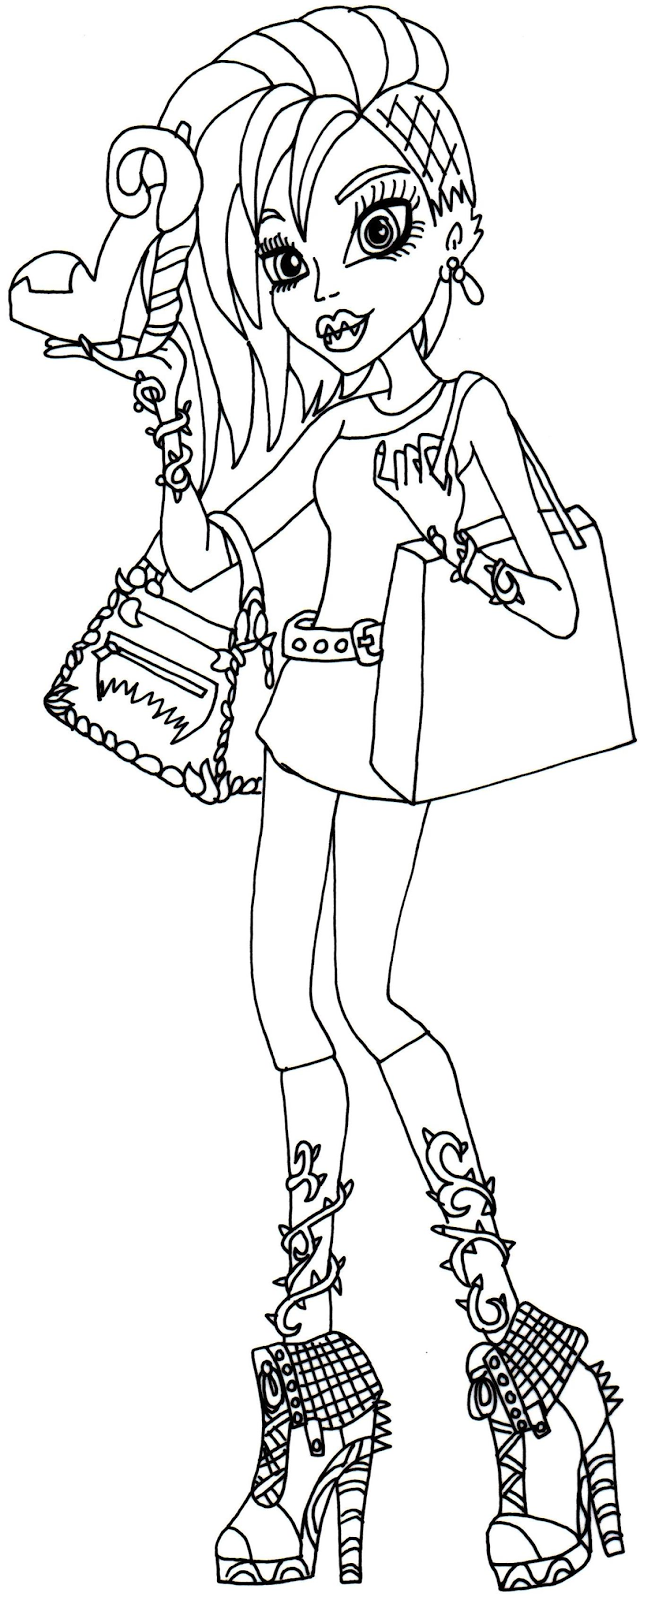 Free Printable Monster High Coloring Page For Venus McFlytrap In Her I Love Fashion Outfit